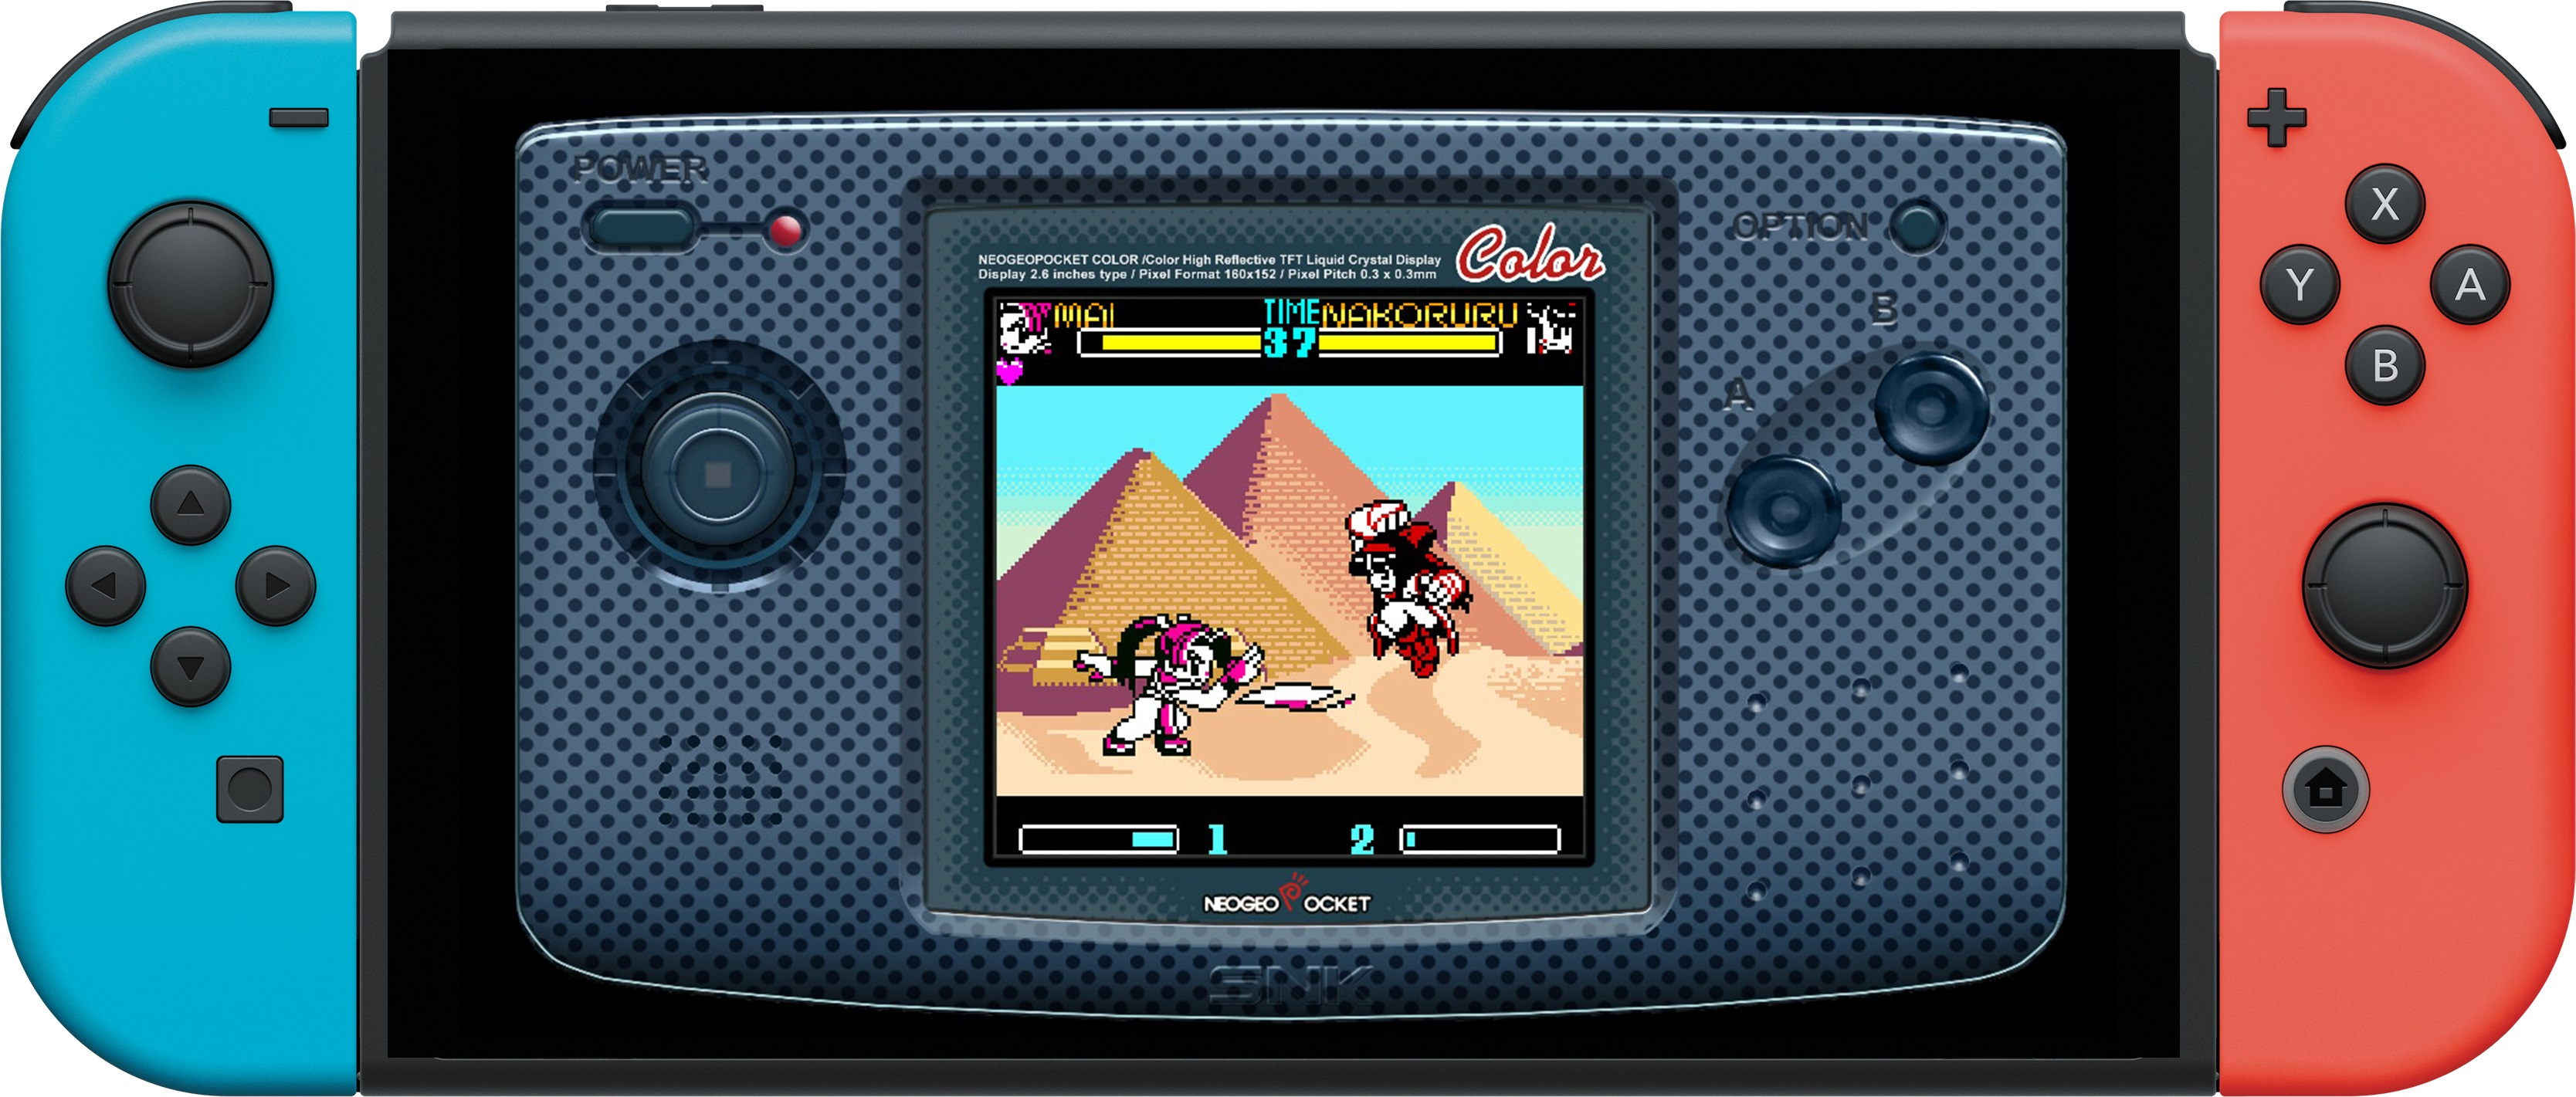 PR - The NEOGEO POCKET fighter SNK GALS' FIGHTERS is now available on the Nintendo Switch!